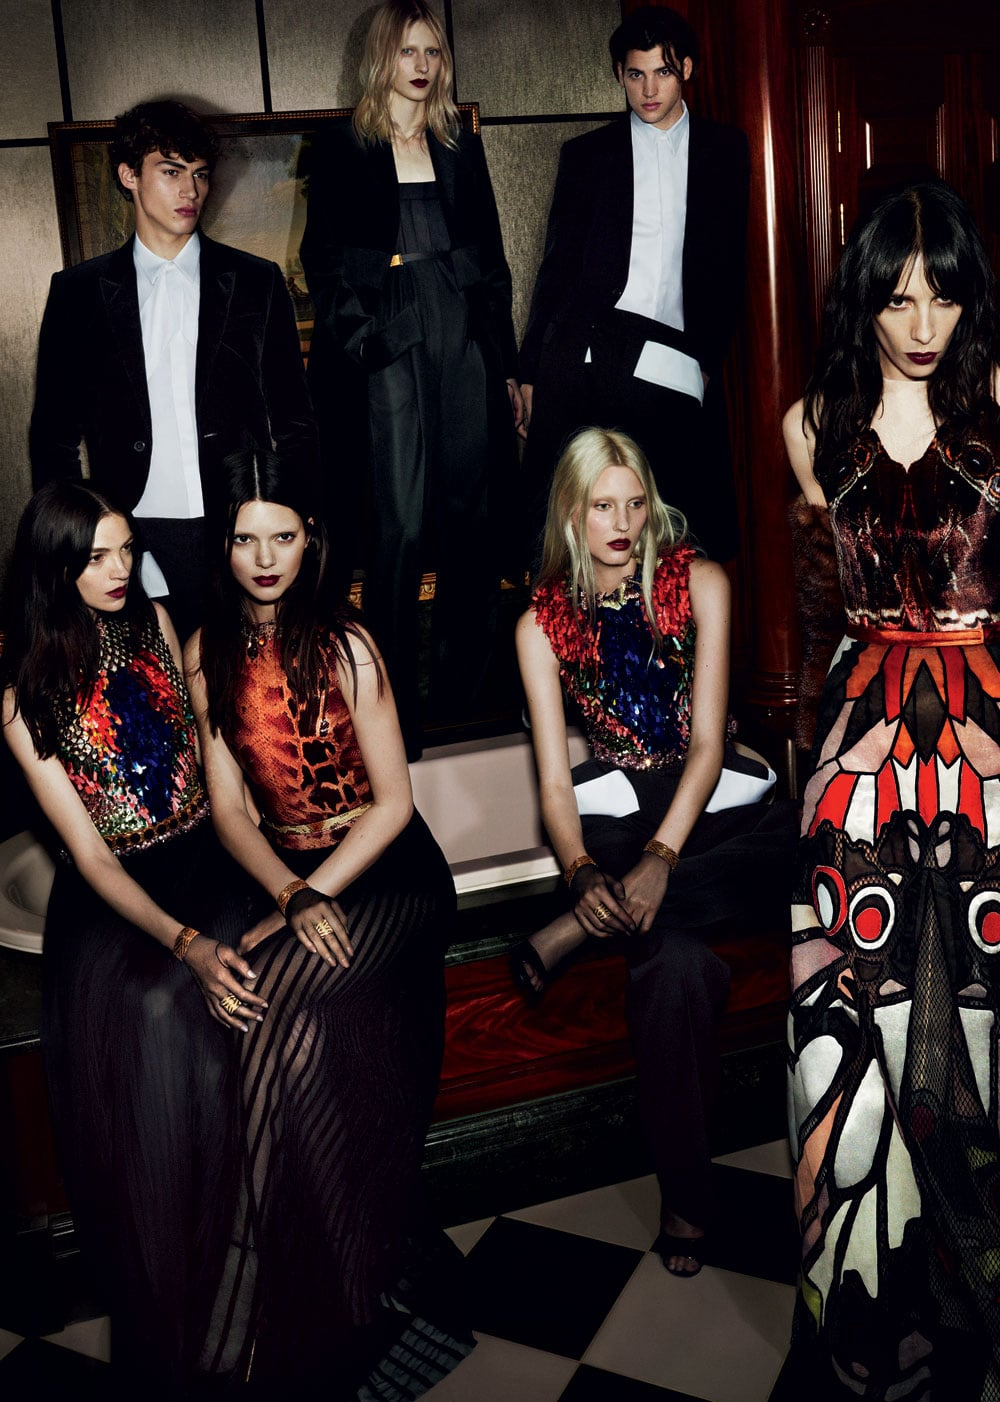 Givenchy Fall Winter 2014 Ad Campaign Featuring Isabelle